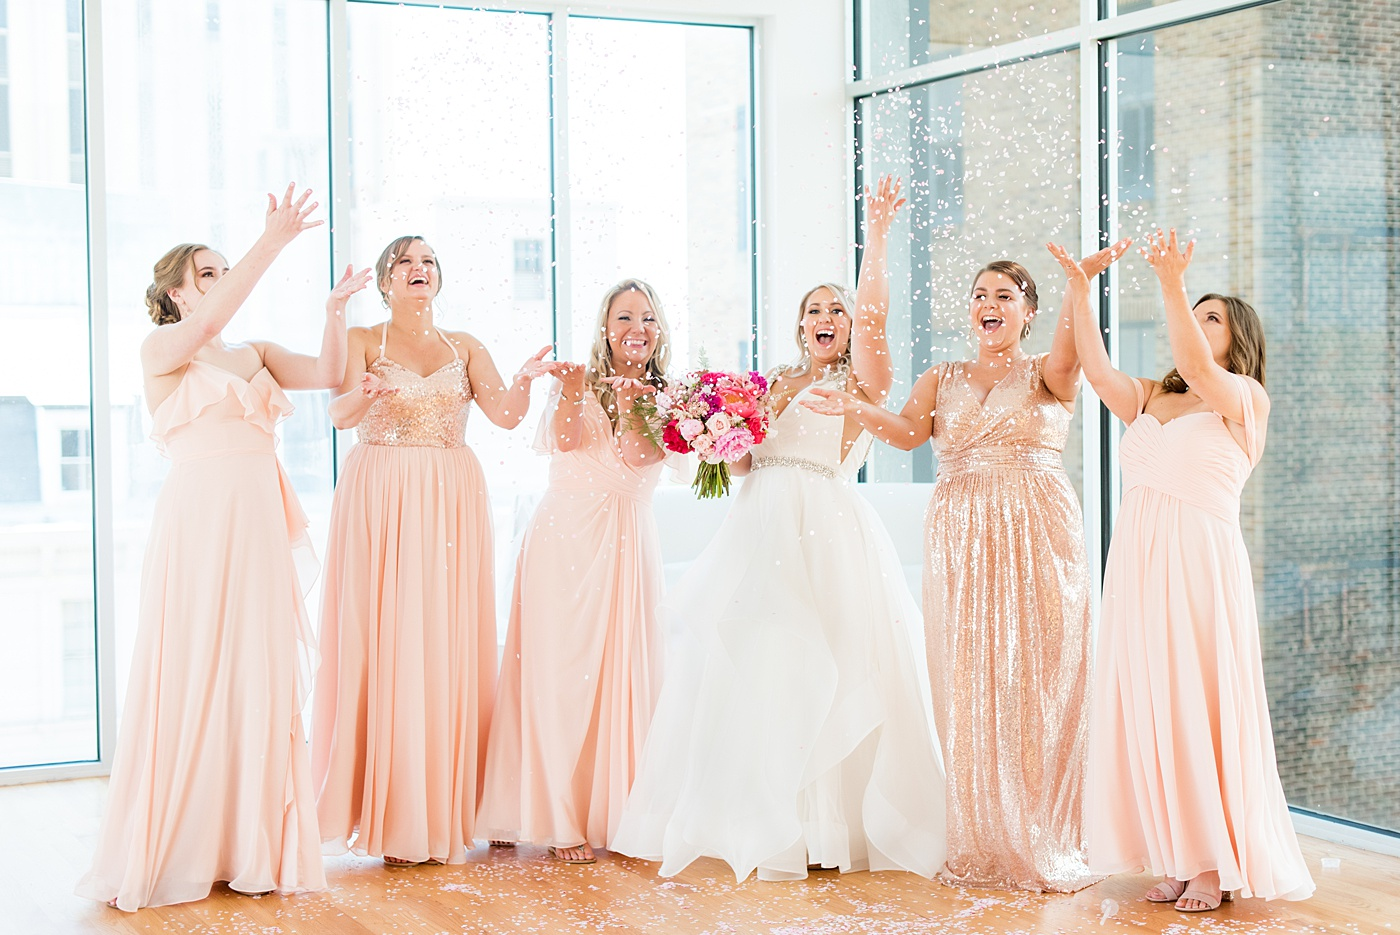 Bridesmaids celebrate with a confetti toss at The Glass Box in downtown Raleigh, North Carolina. The event venue, The Stockroom at 230 was the perfect place for a North Carolina bride and groom to get married. #MikkelPaige #DowntownRaleigh #RaleighWedding #RaleighVenue #TheStockroomat230 #theglassbox #confettiweddingphotos #confetti #weddingparty #bridesmaids